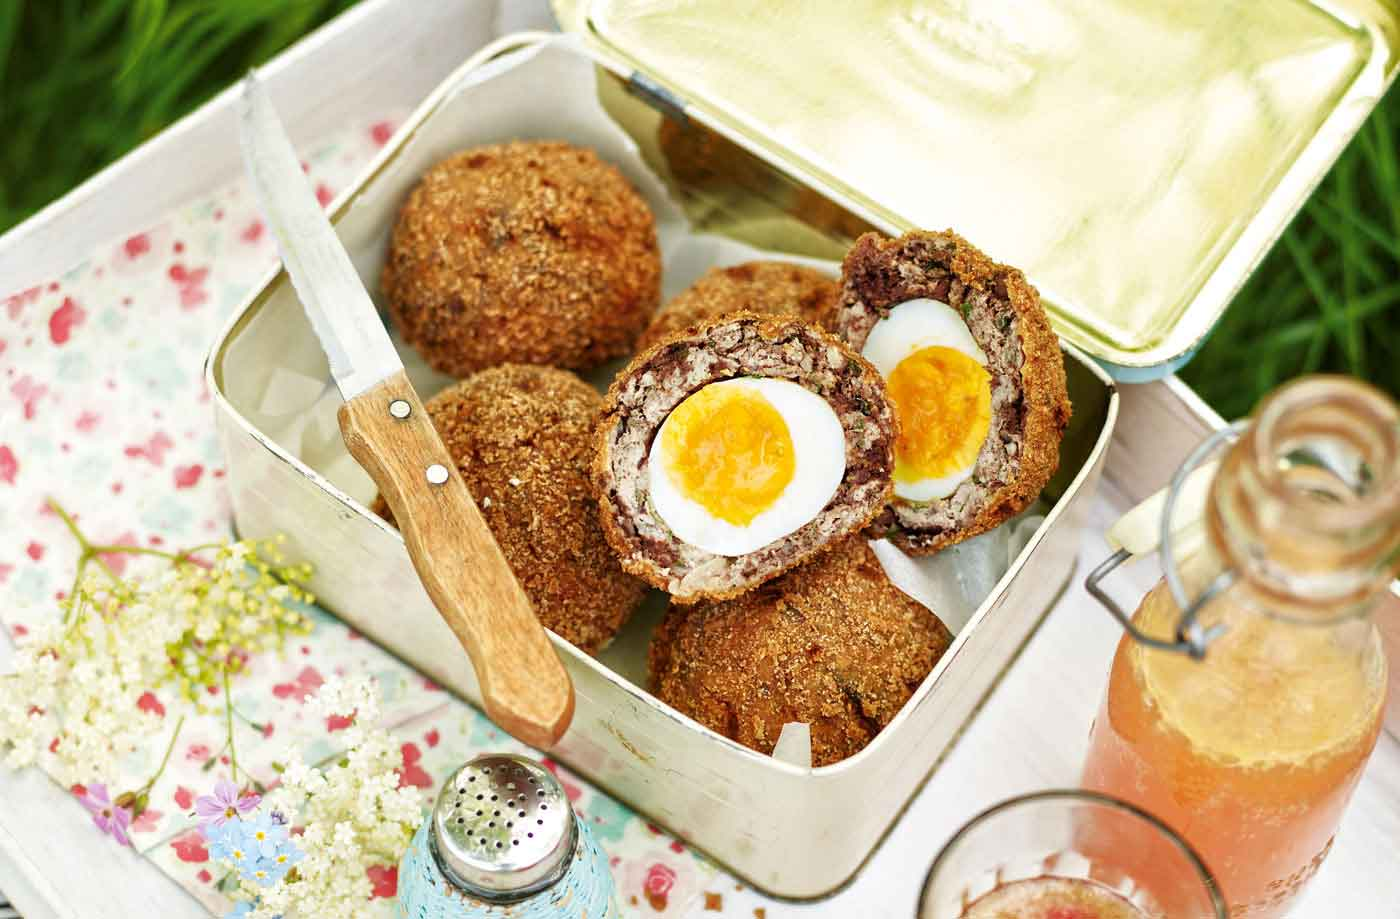 Apple and black pudding scotch eggs recipe